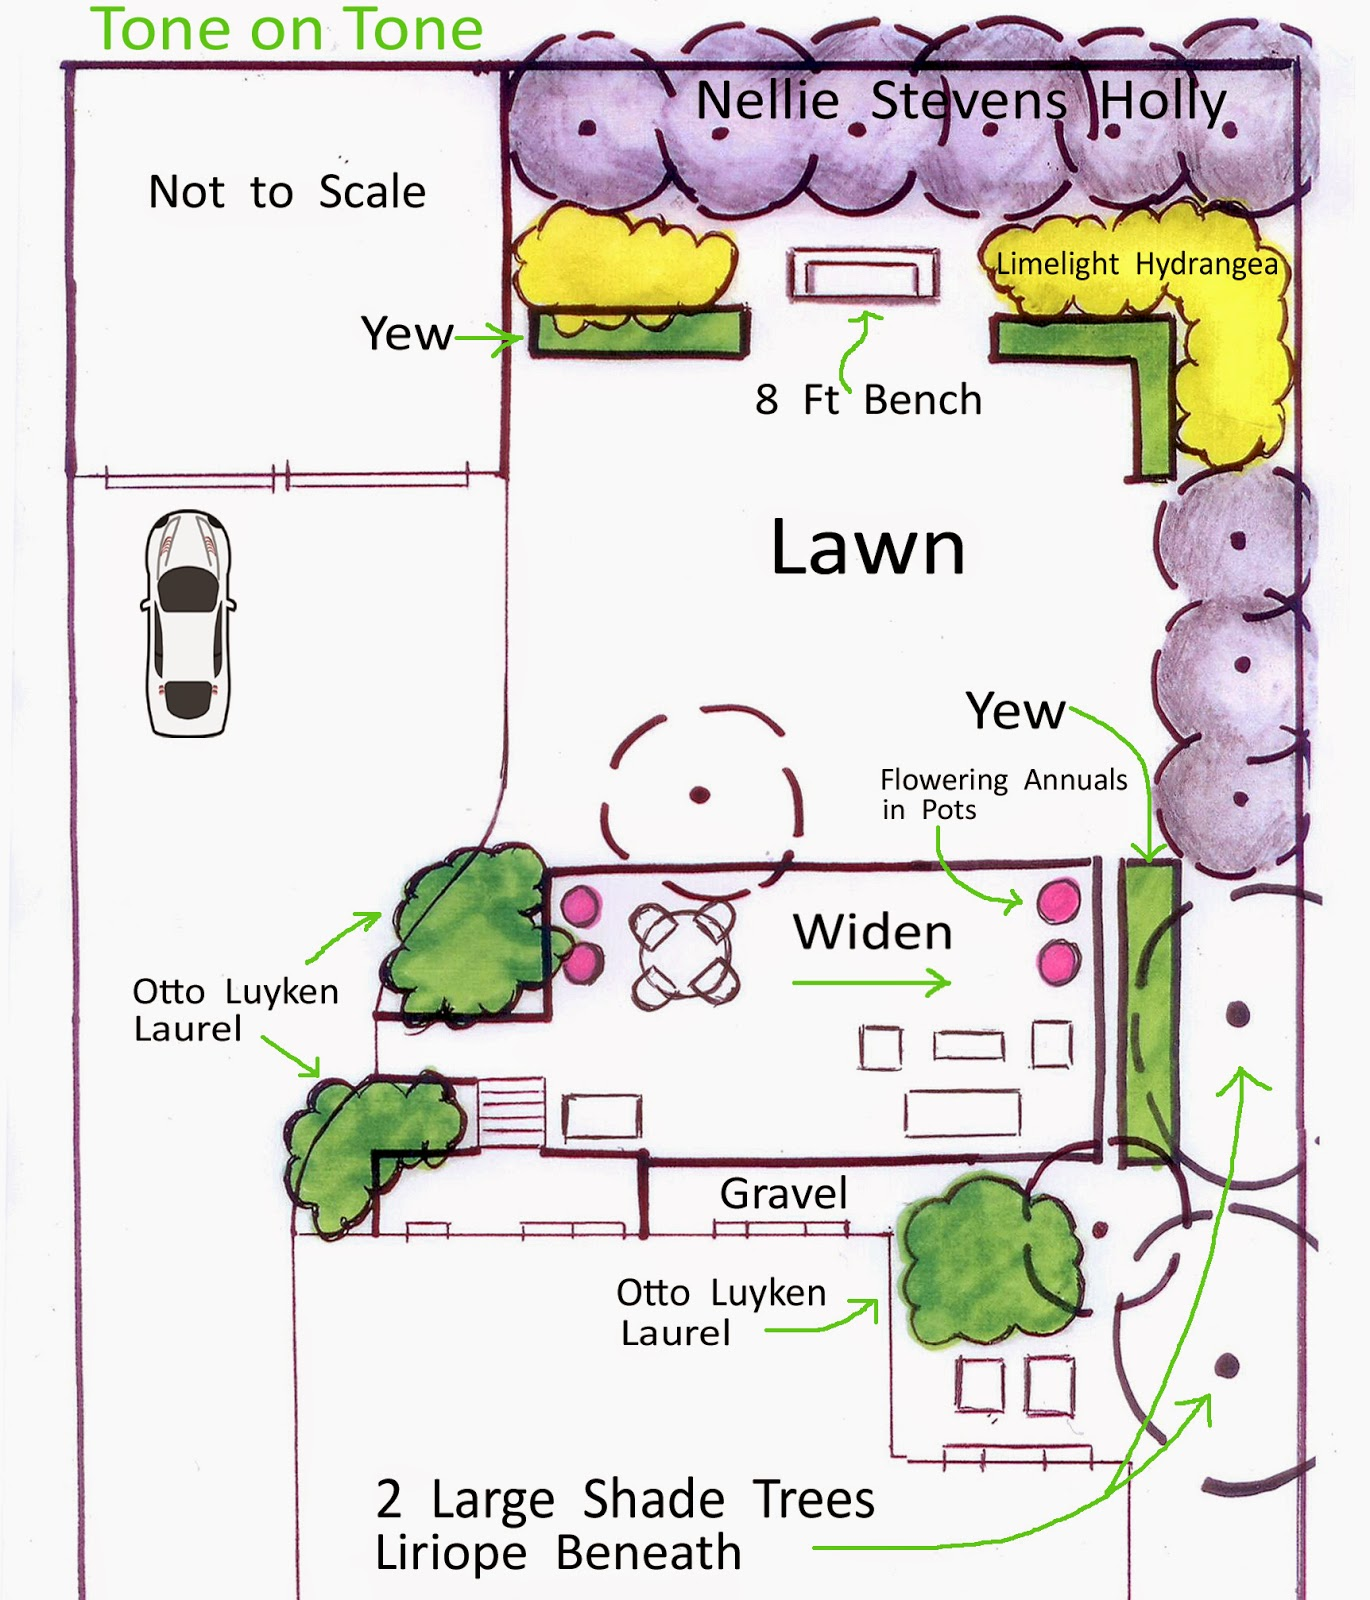 Landscaping plans for a gorgeous backyard kellyelko.com